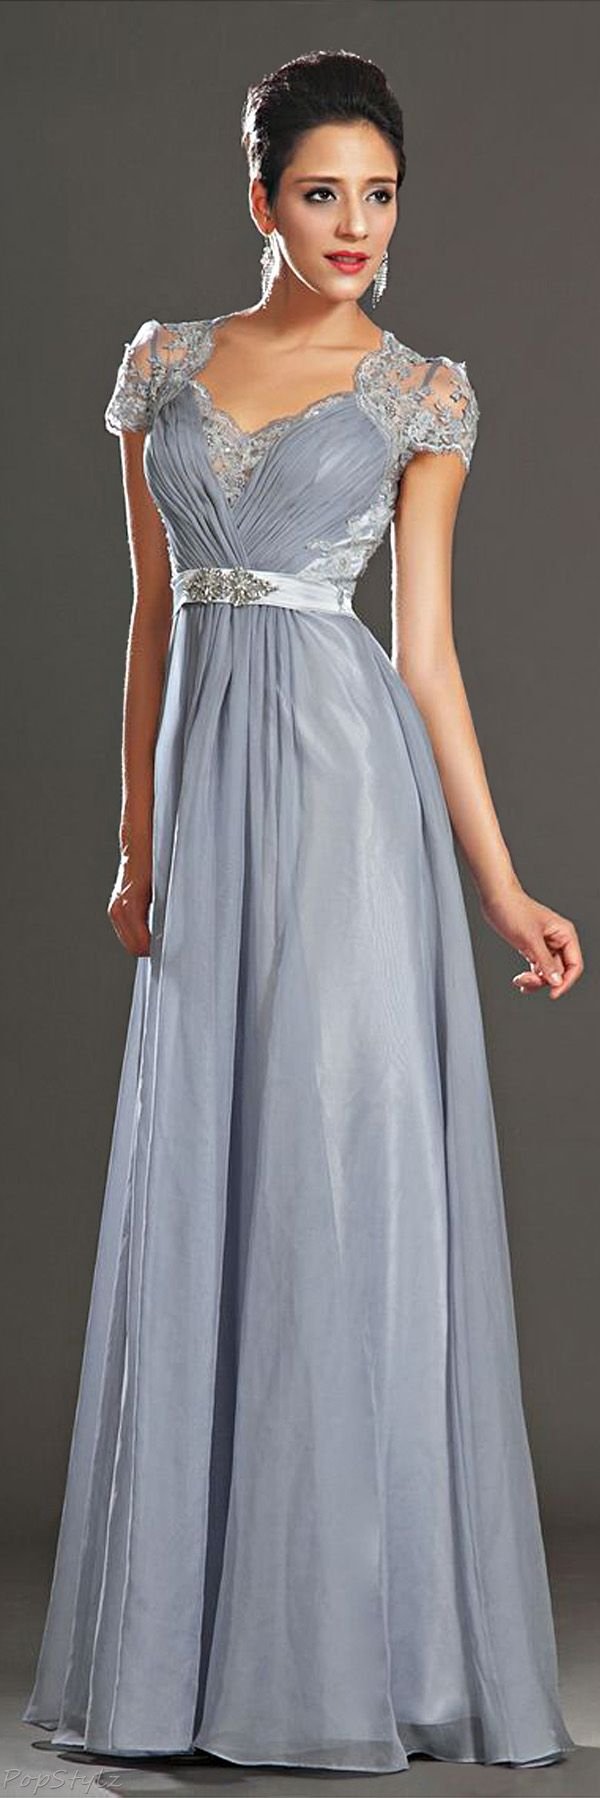 Elegant Silver Evening Gown | Bridesmaids | Pinterest | Silver ...